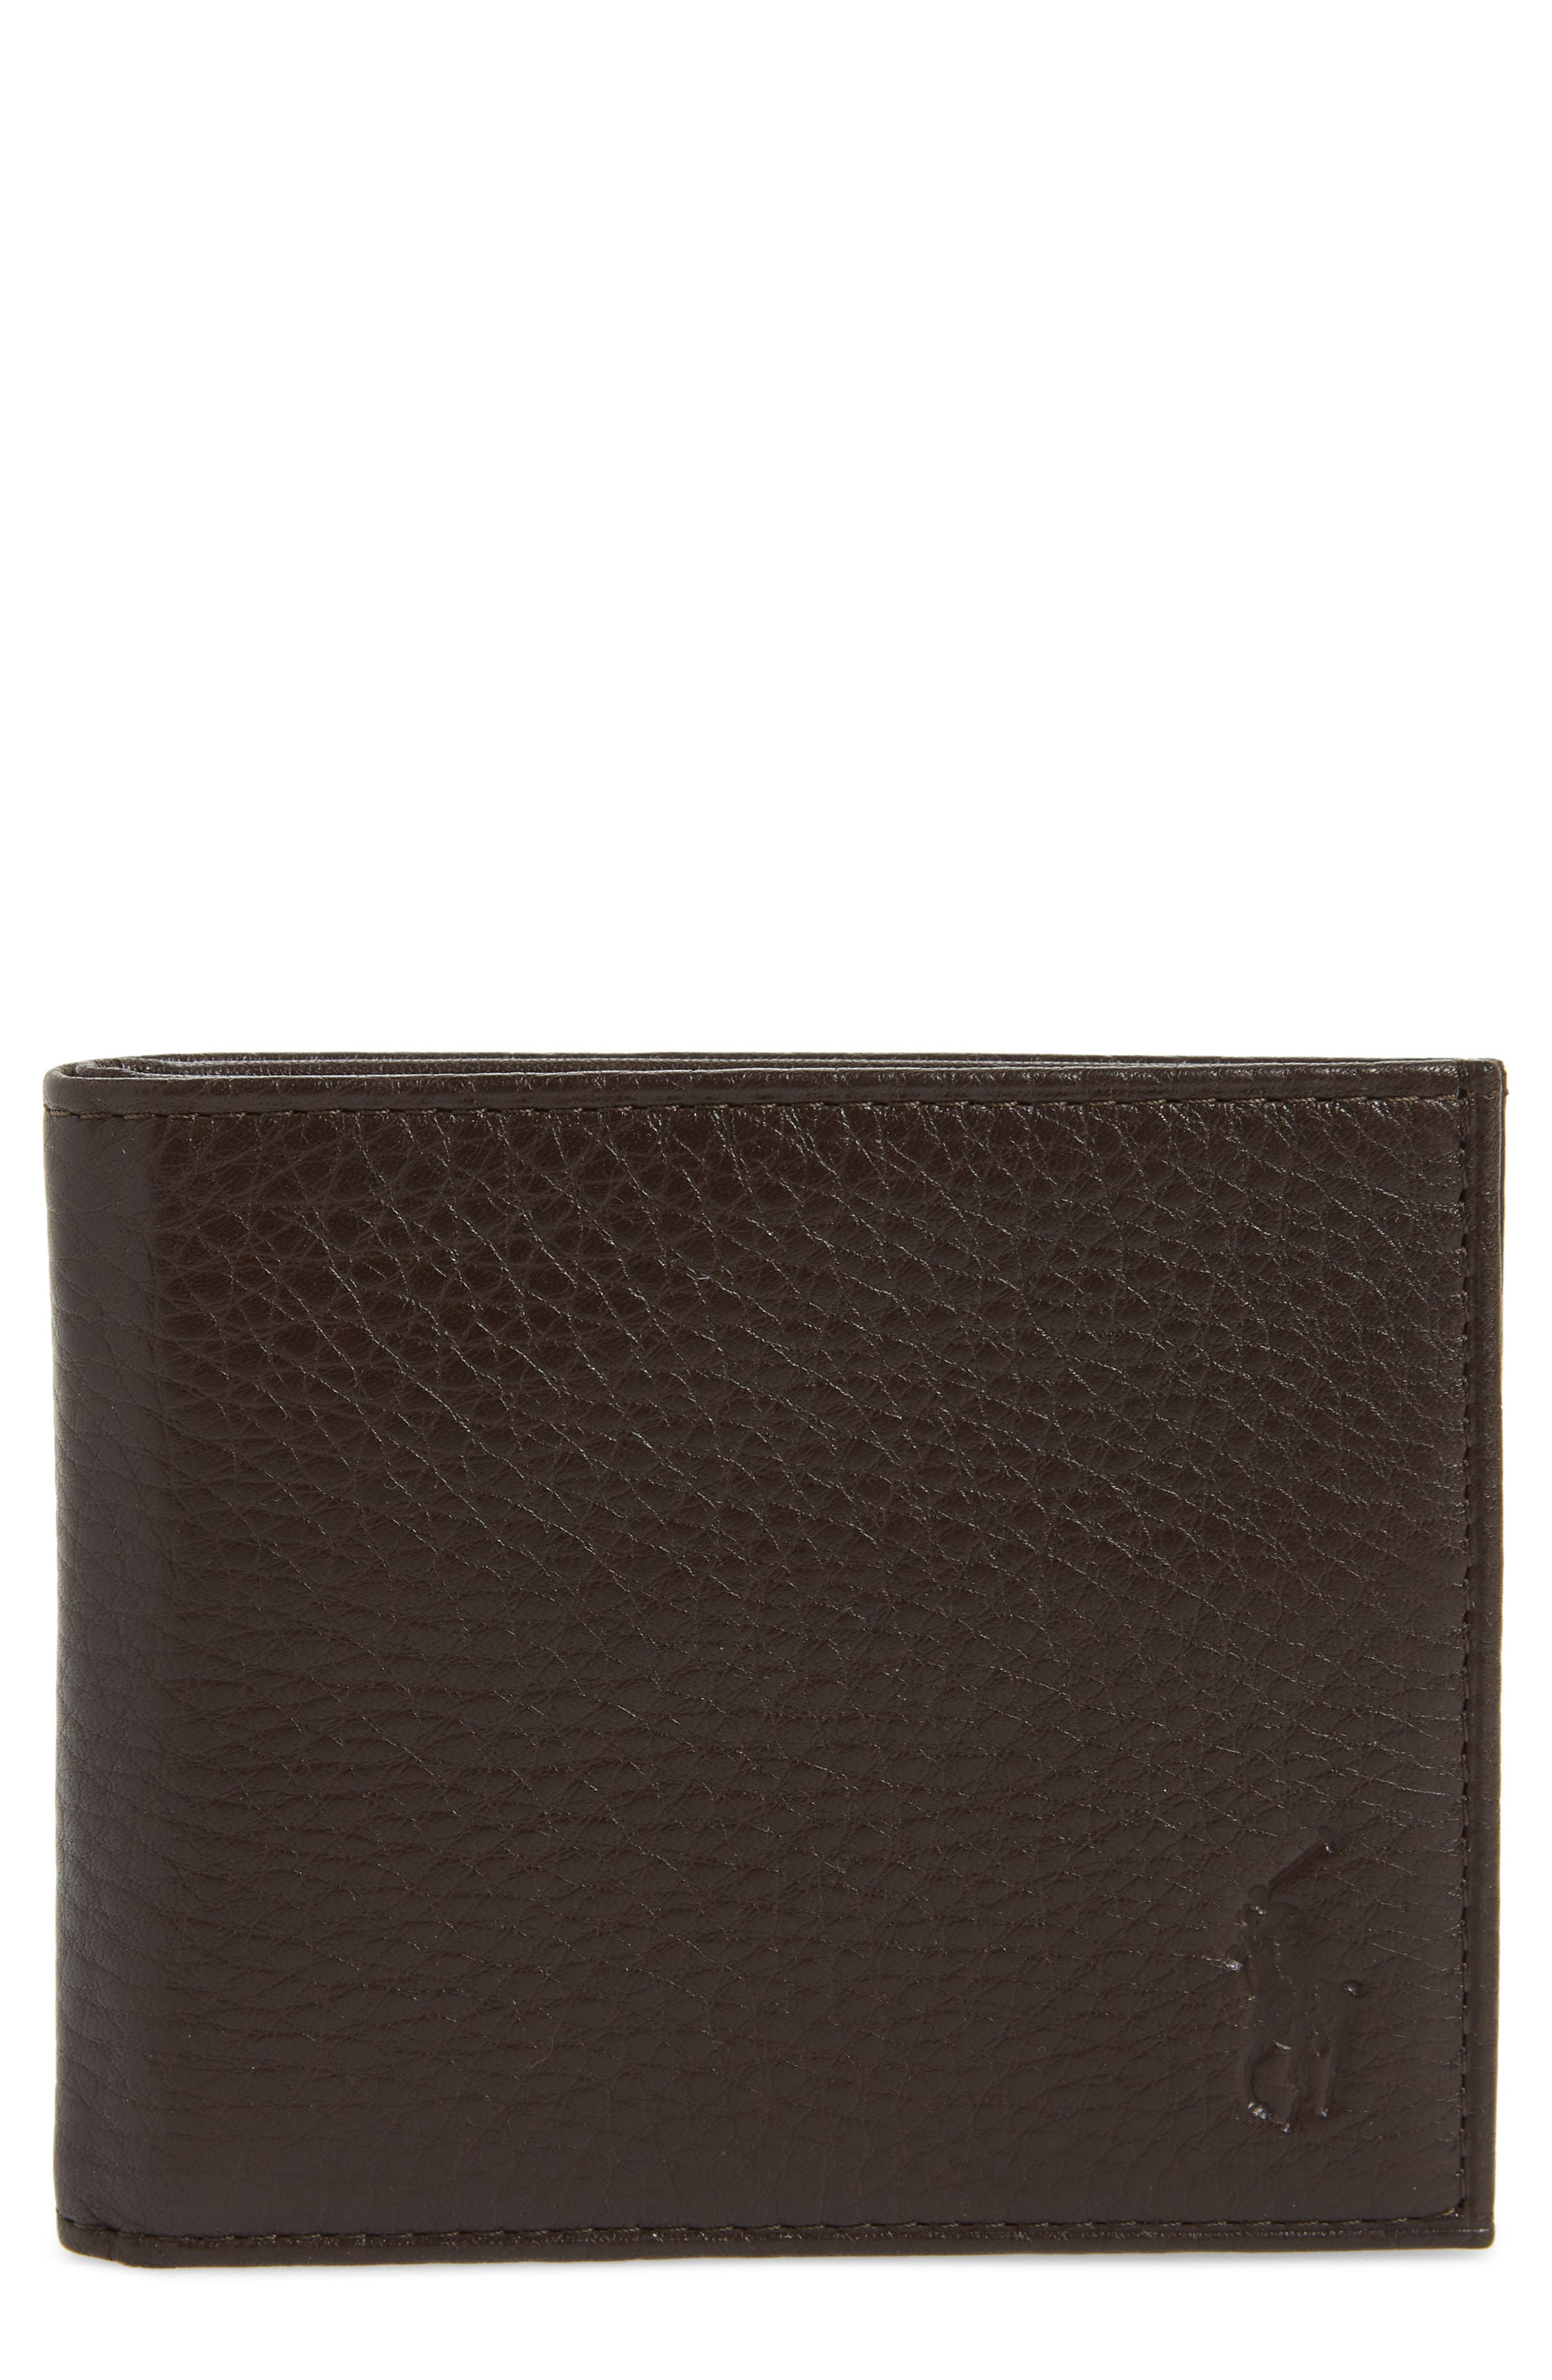 Alternate Image 1 Selected - Polo Ralph Lauren Bifold Leather Wallet